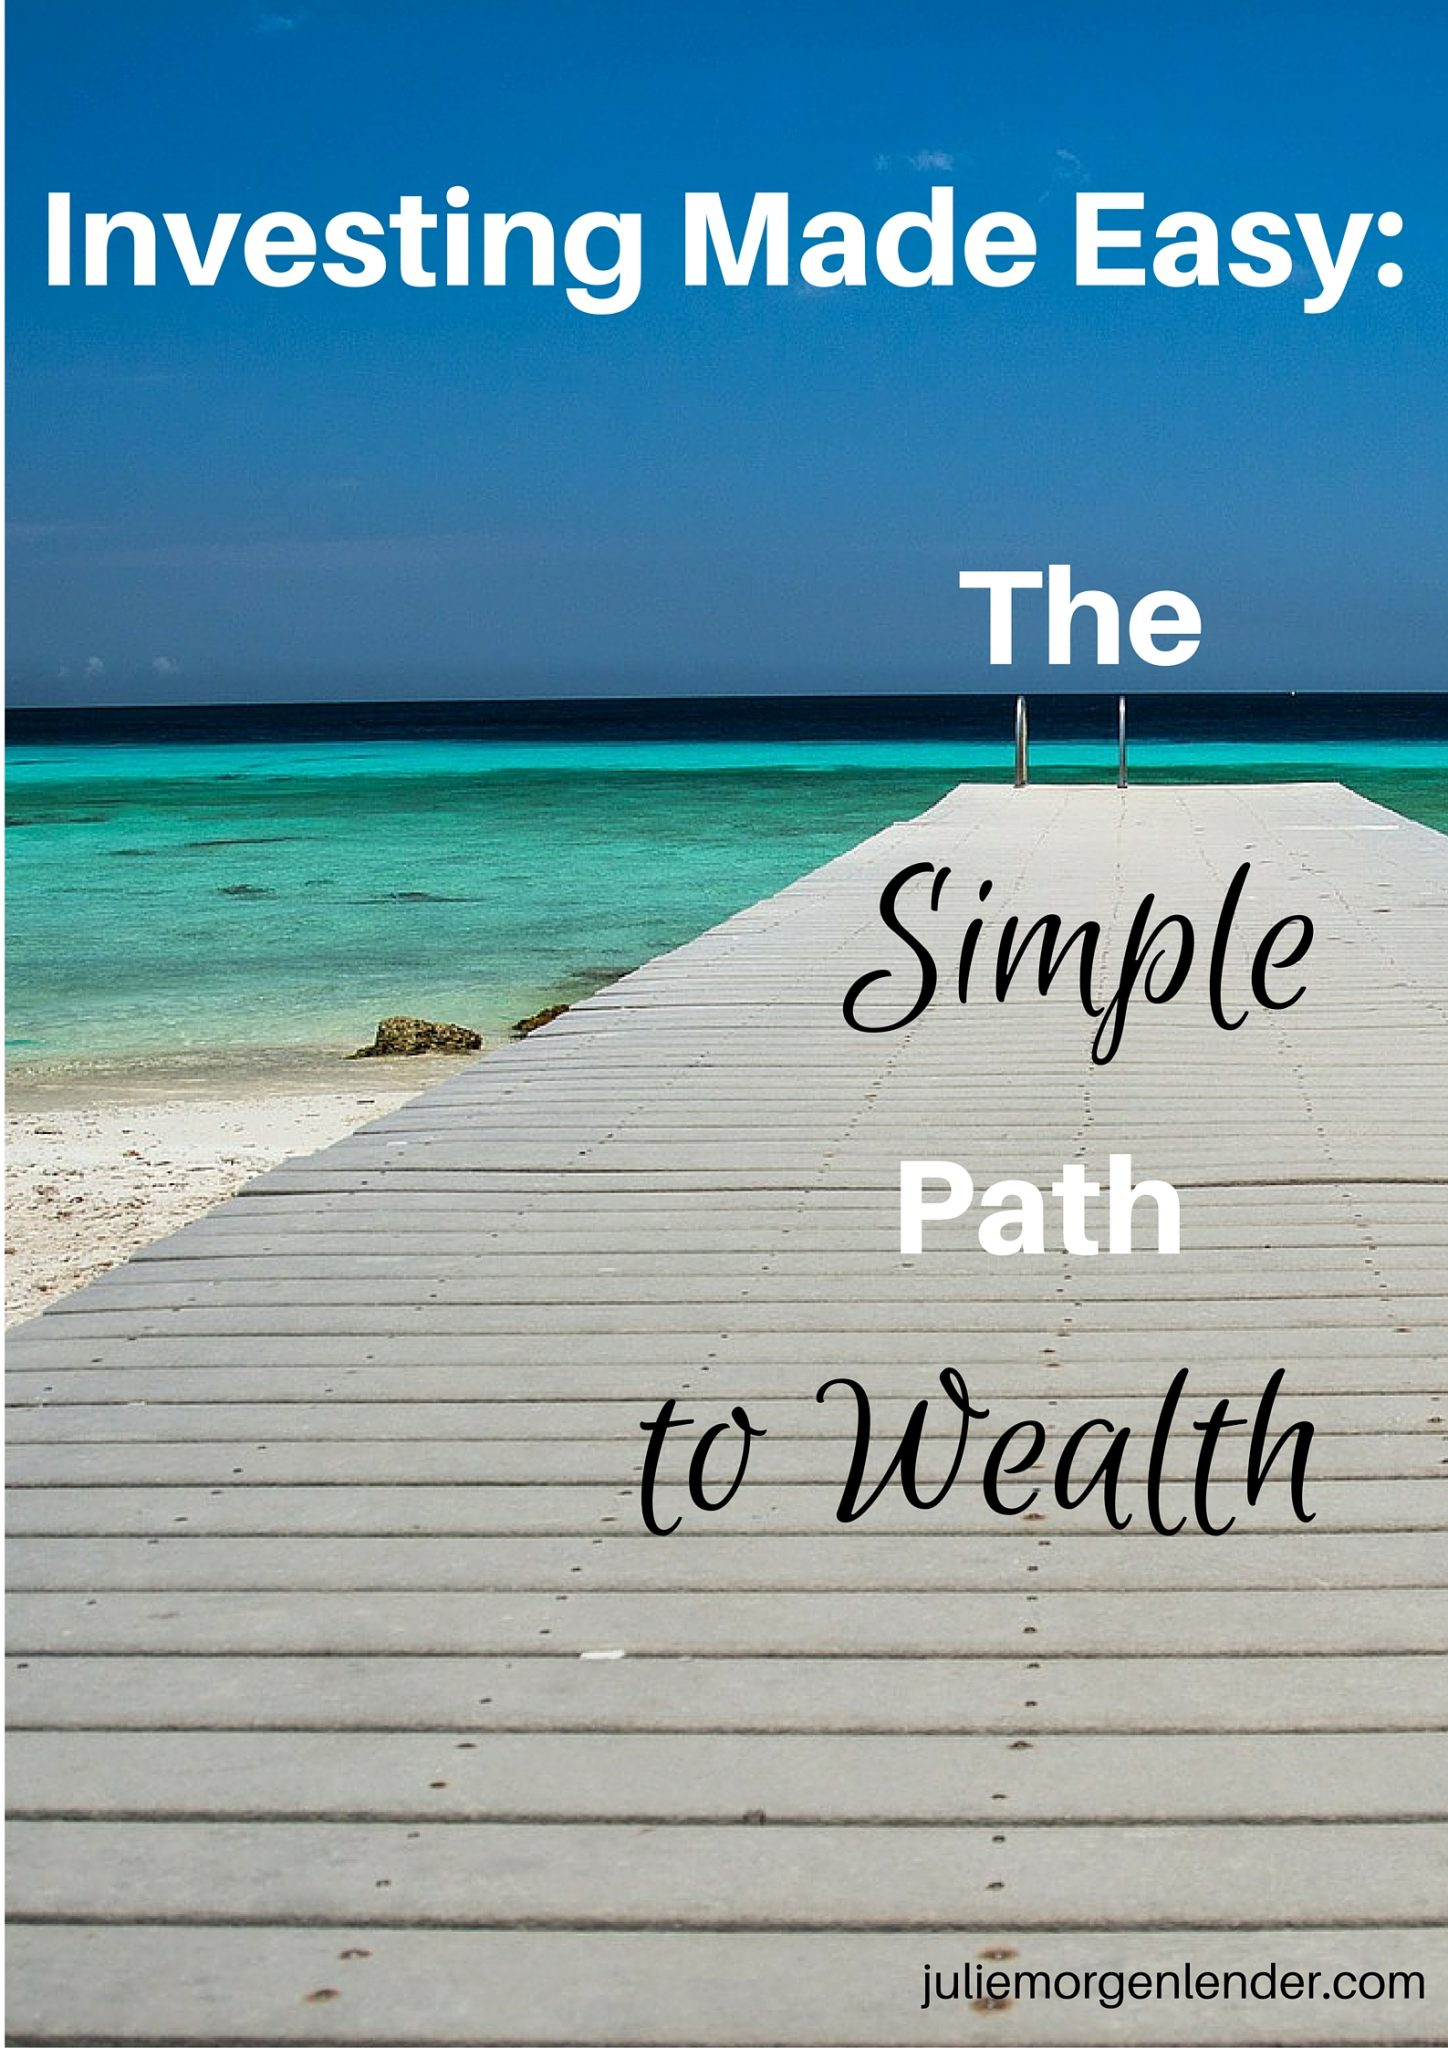 Investing made easy: The Simple Path to Wealth